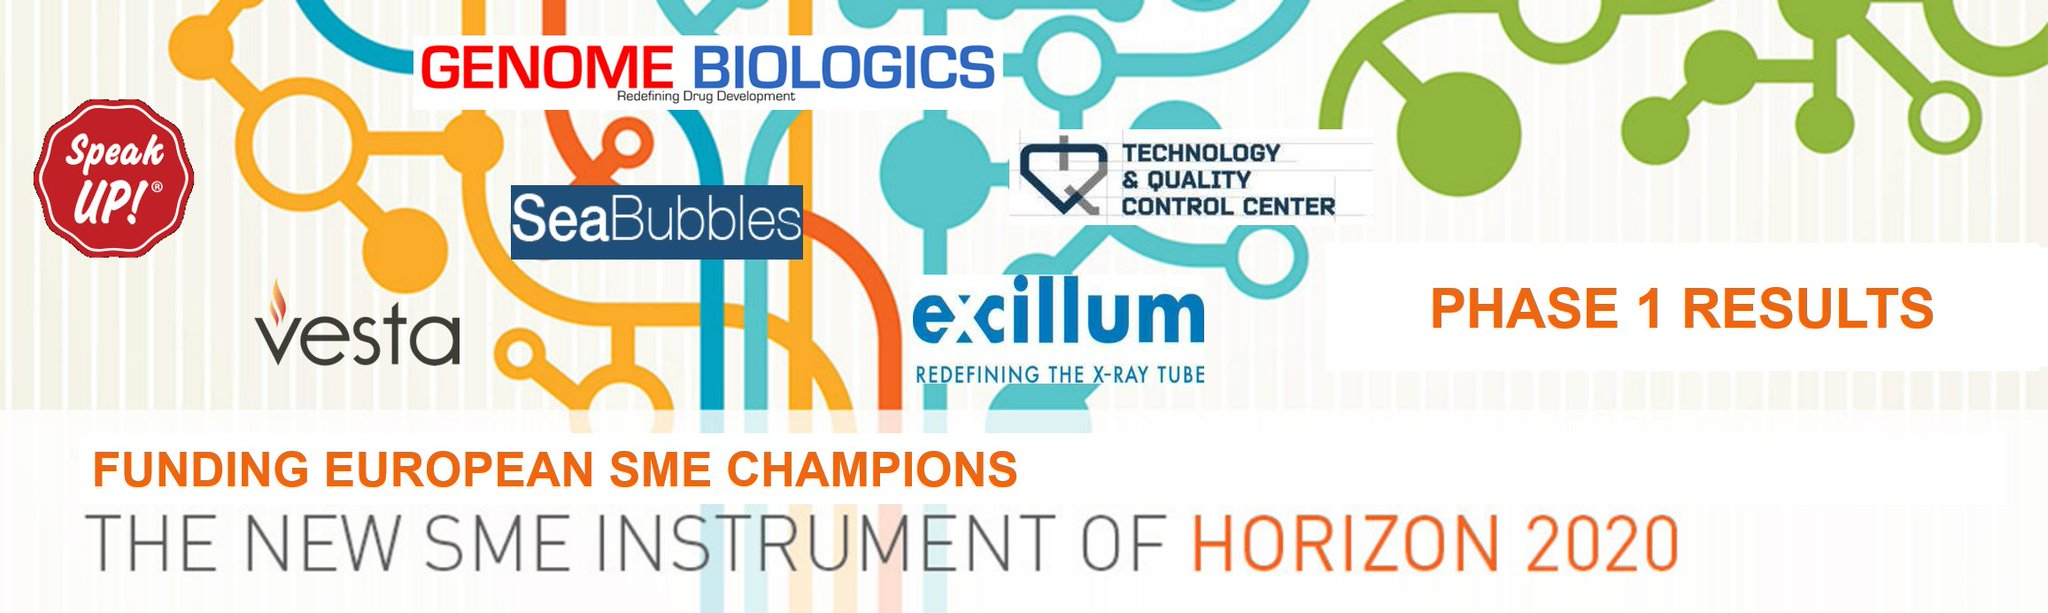 Congratulations to our 6 customers awarded #H2020 #SMEInstrument phase 1 funding today! https://t.co/5lXPhrkwGv